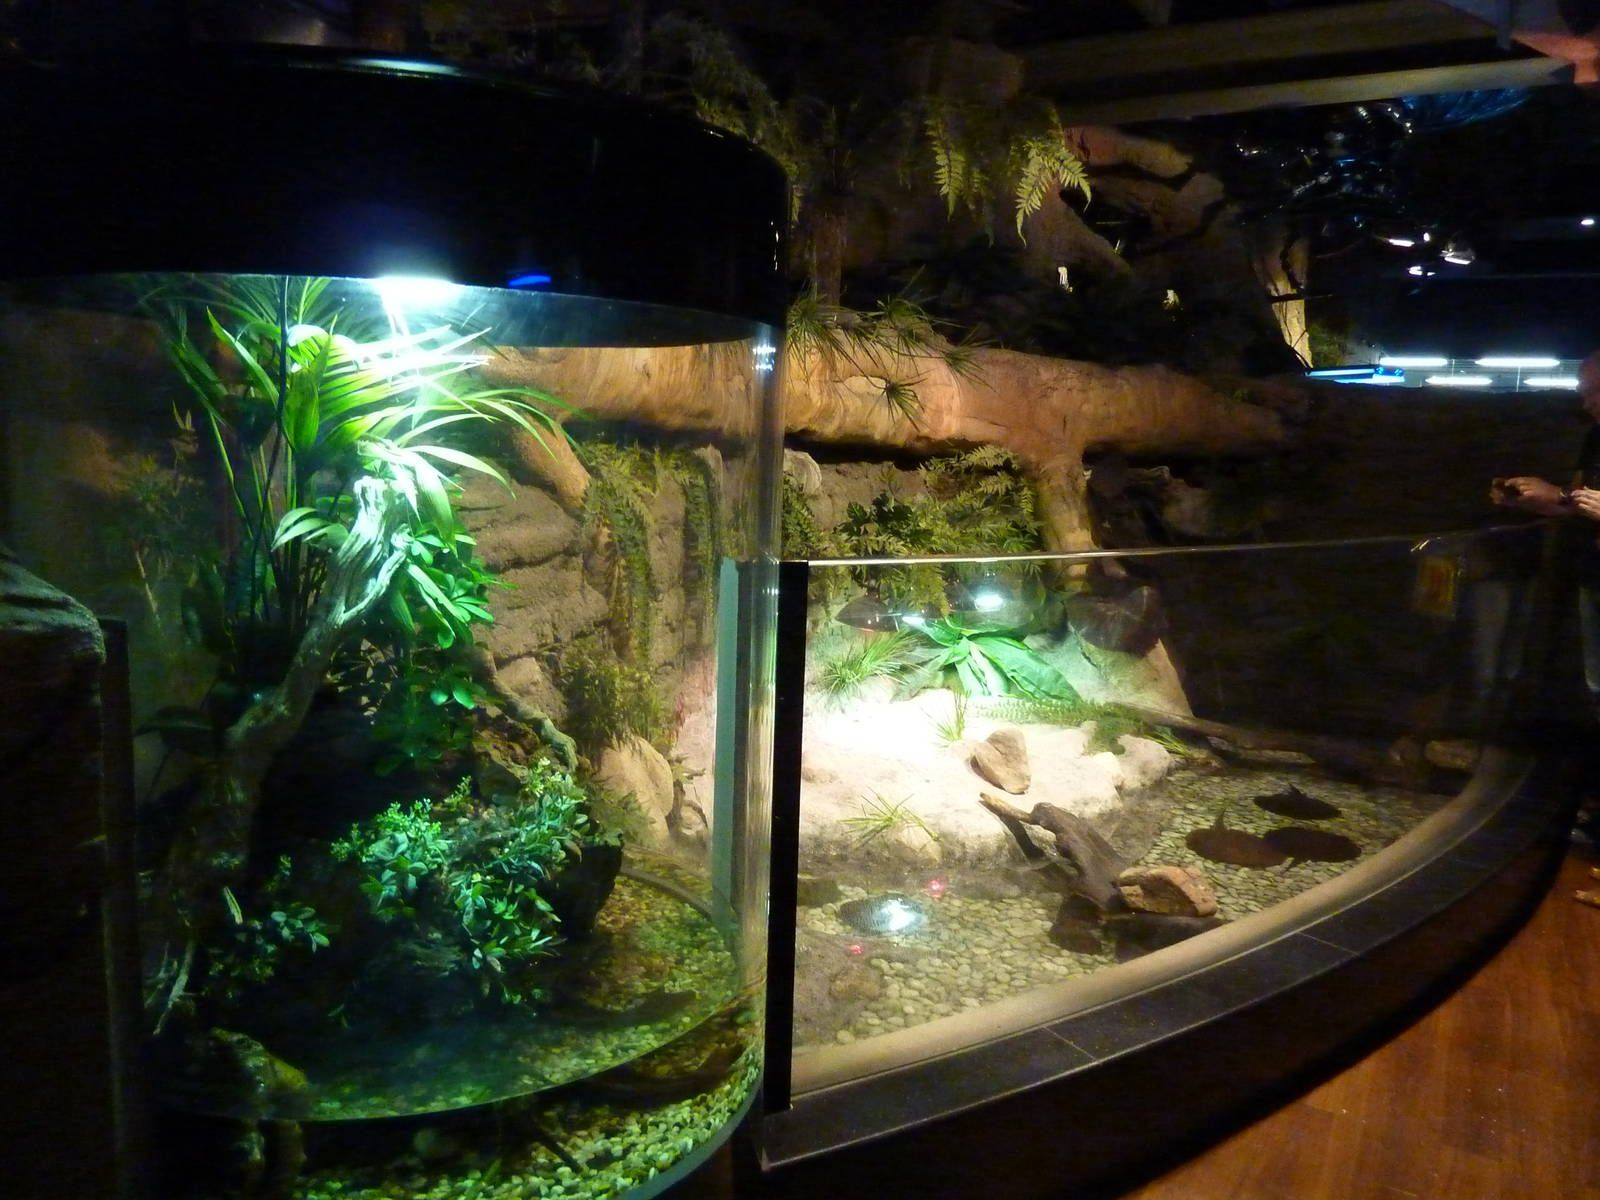 Freshwater Aquarium Fish In Dubai - Cuvier s dwarf caiman amp chinese water dragon enclosures dubai aquarium underwater